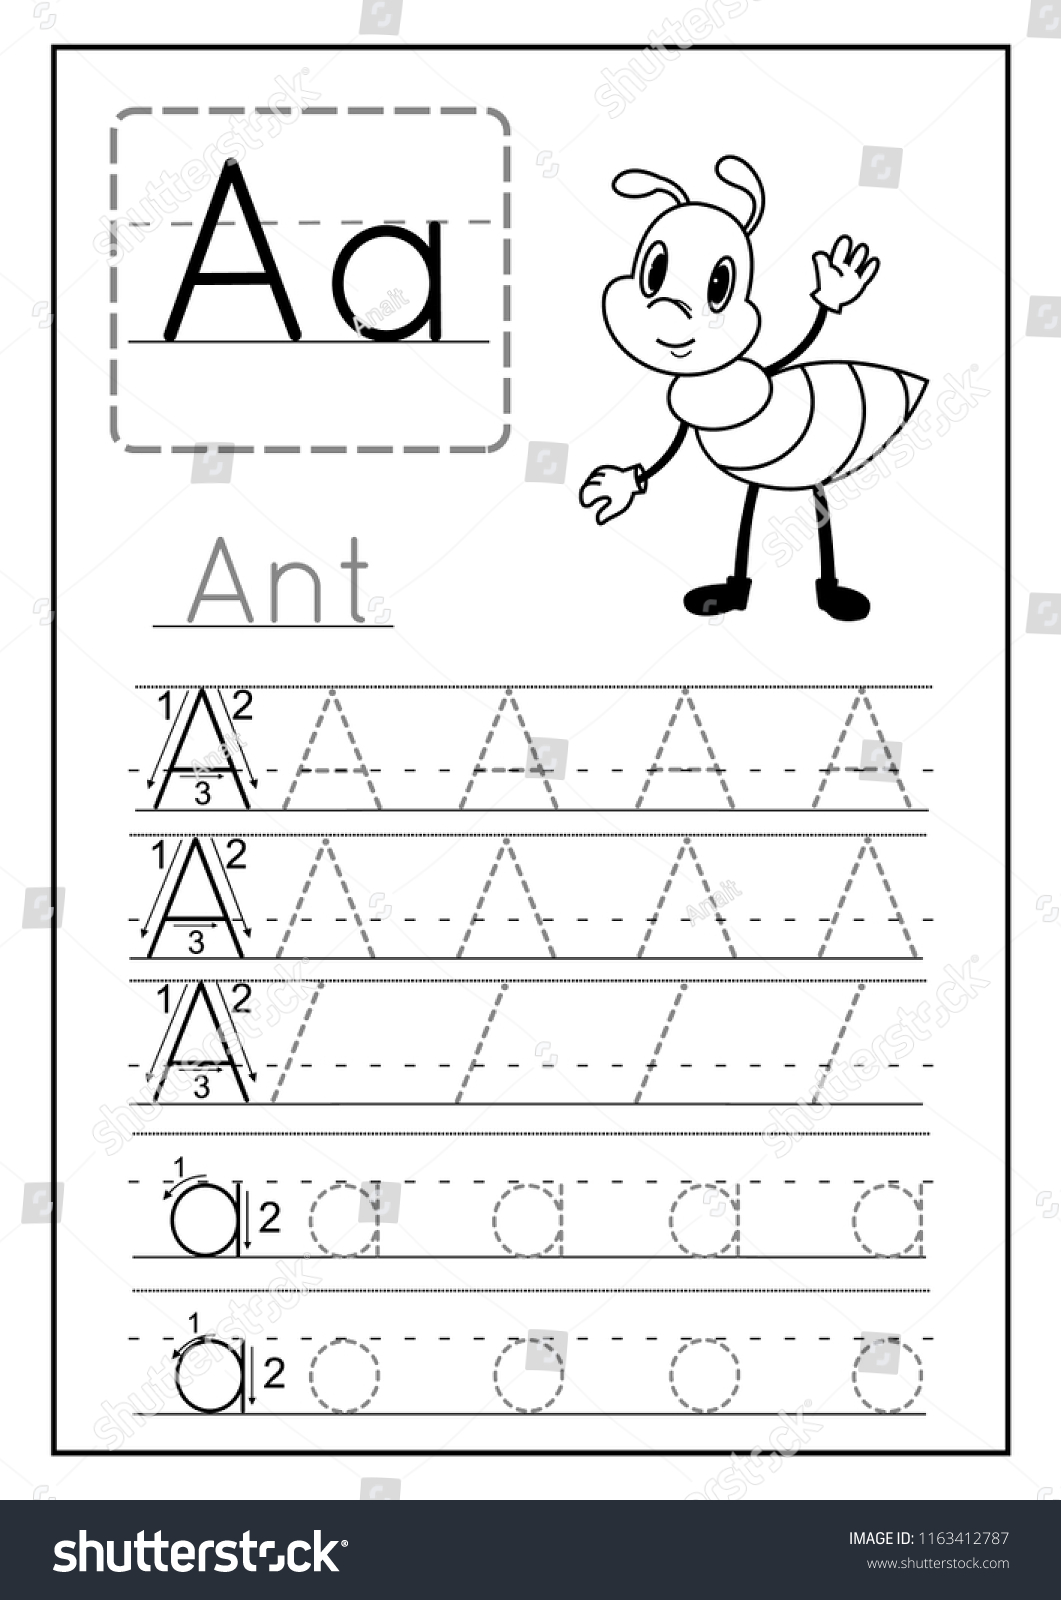 A For Ant Worksheet